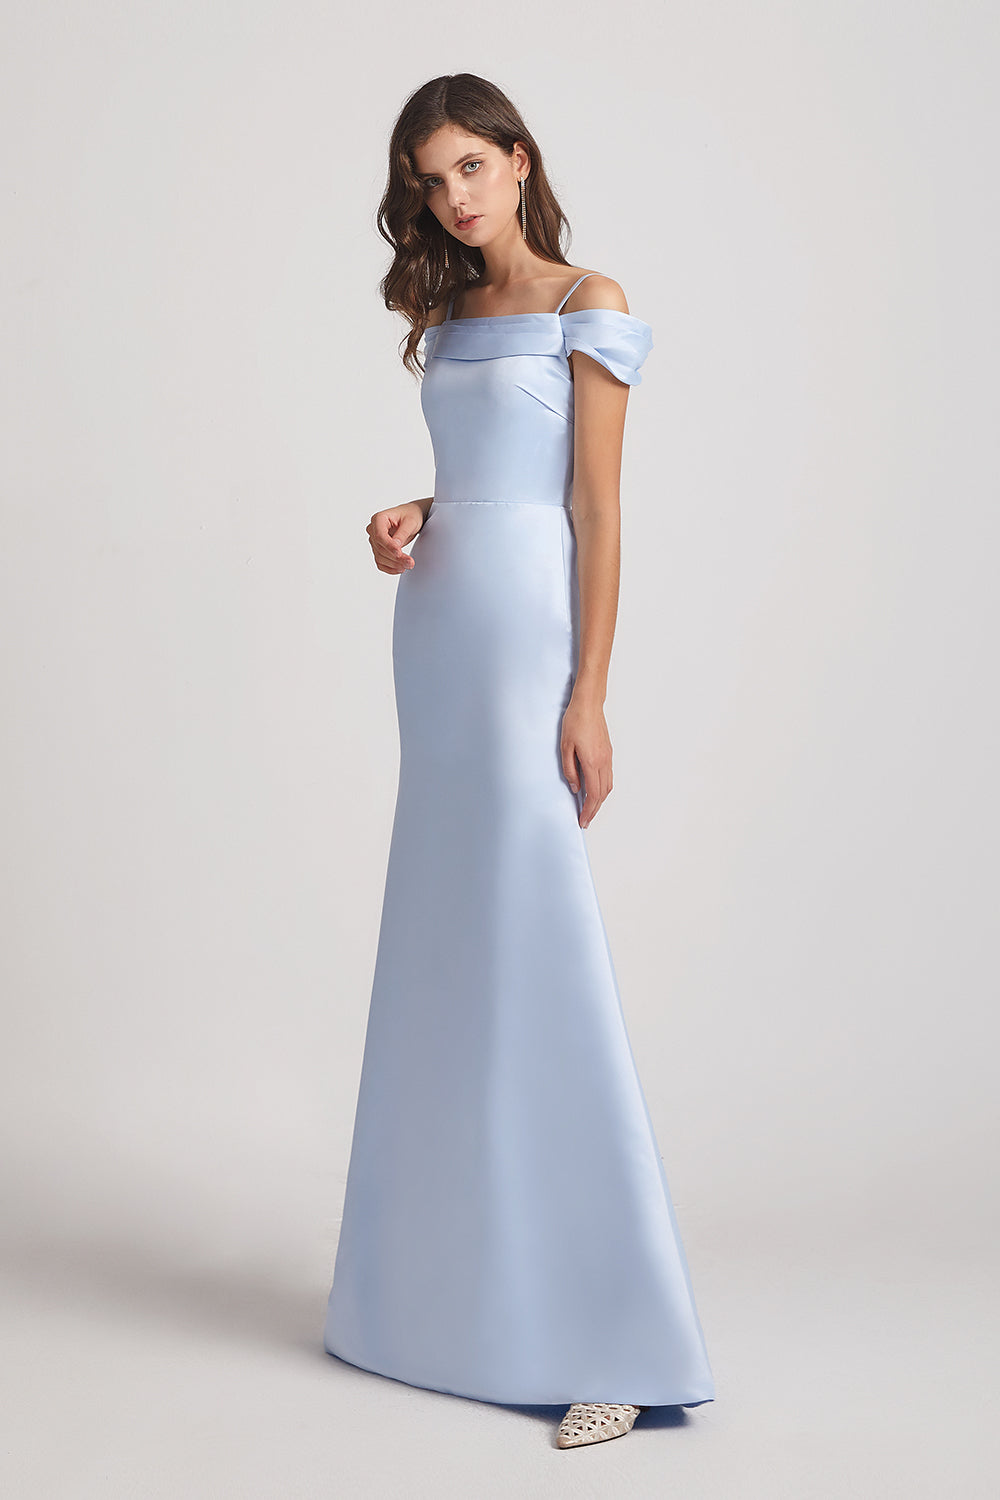 long blue satin maids of honor dresses